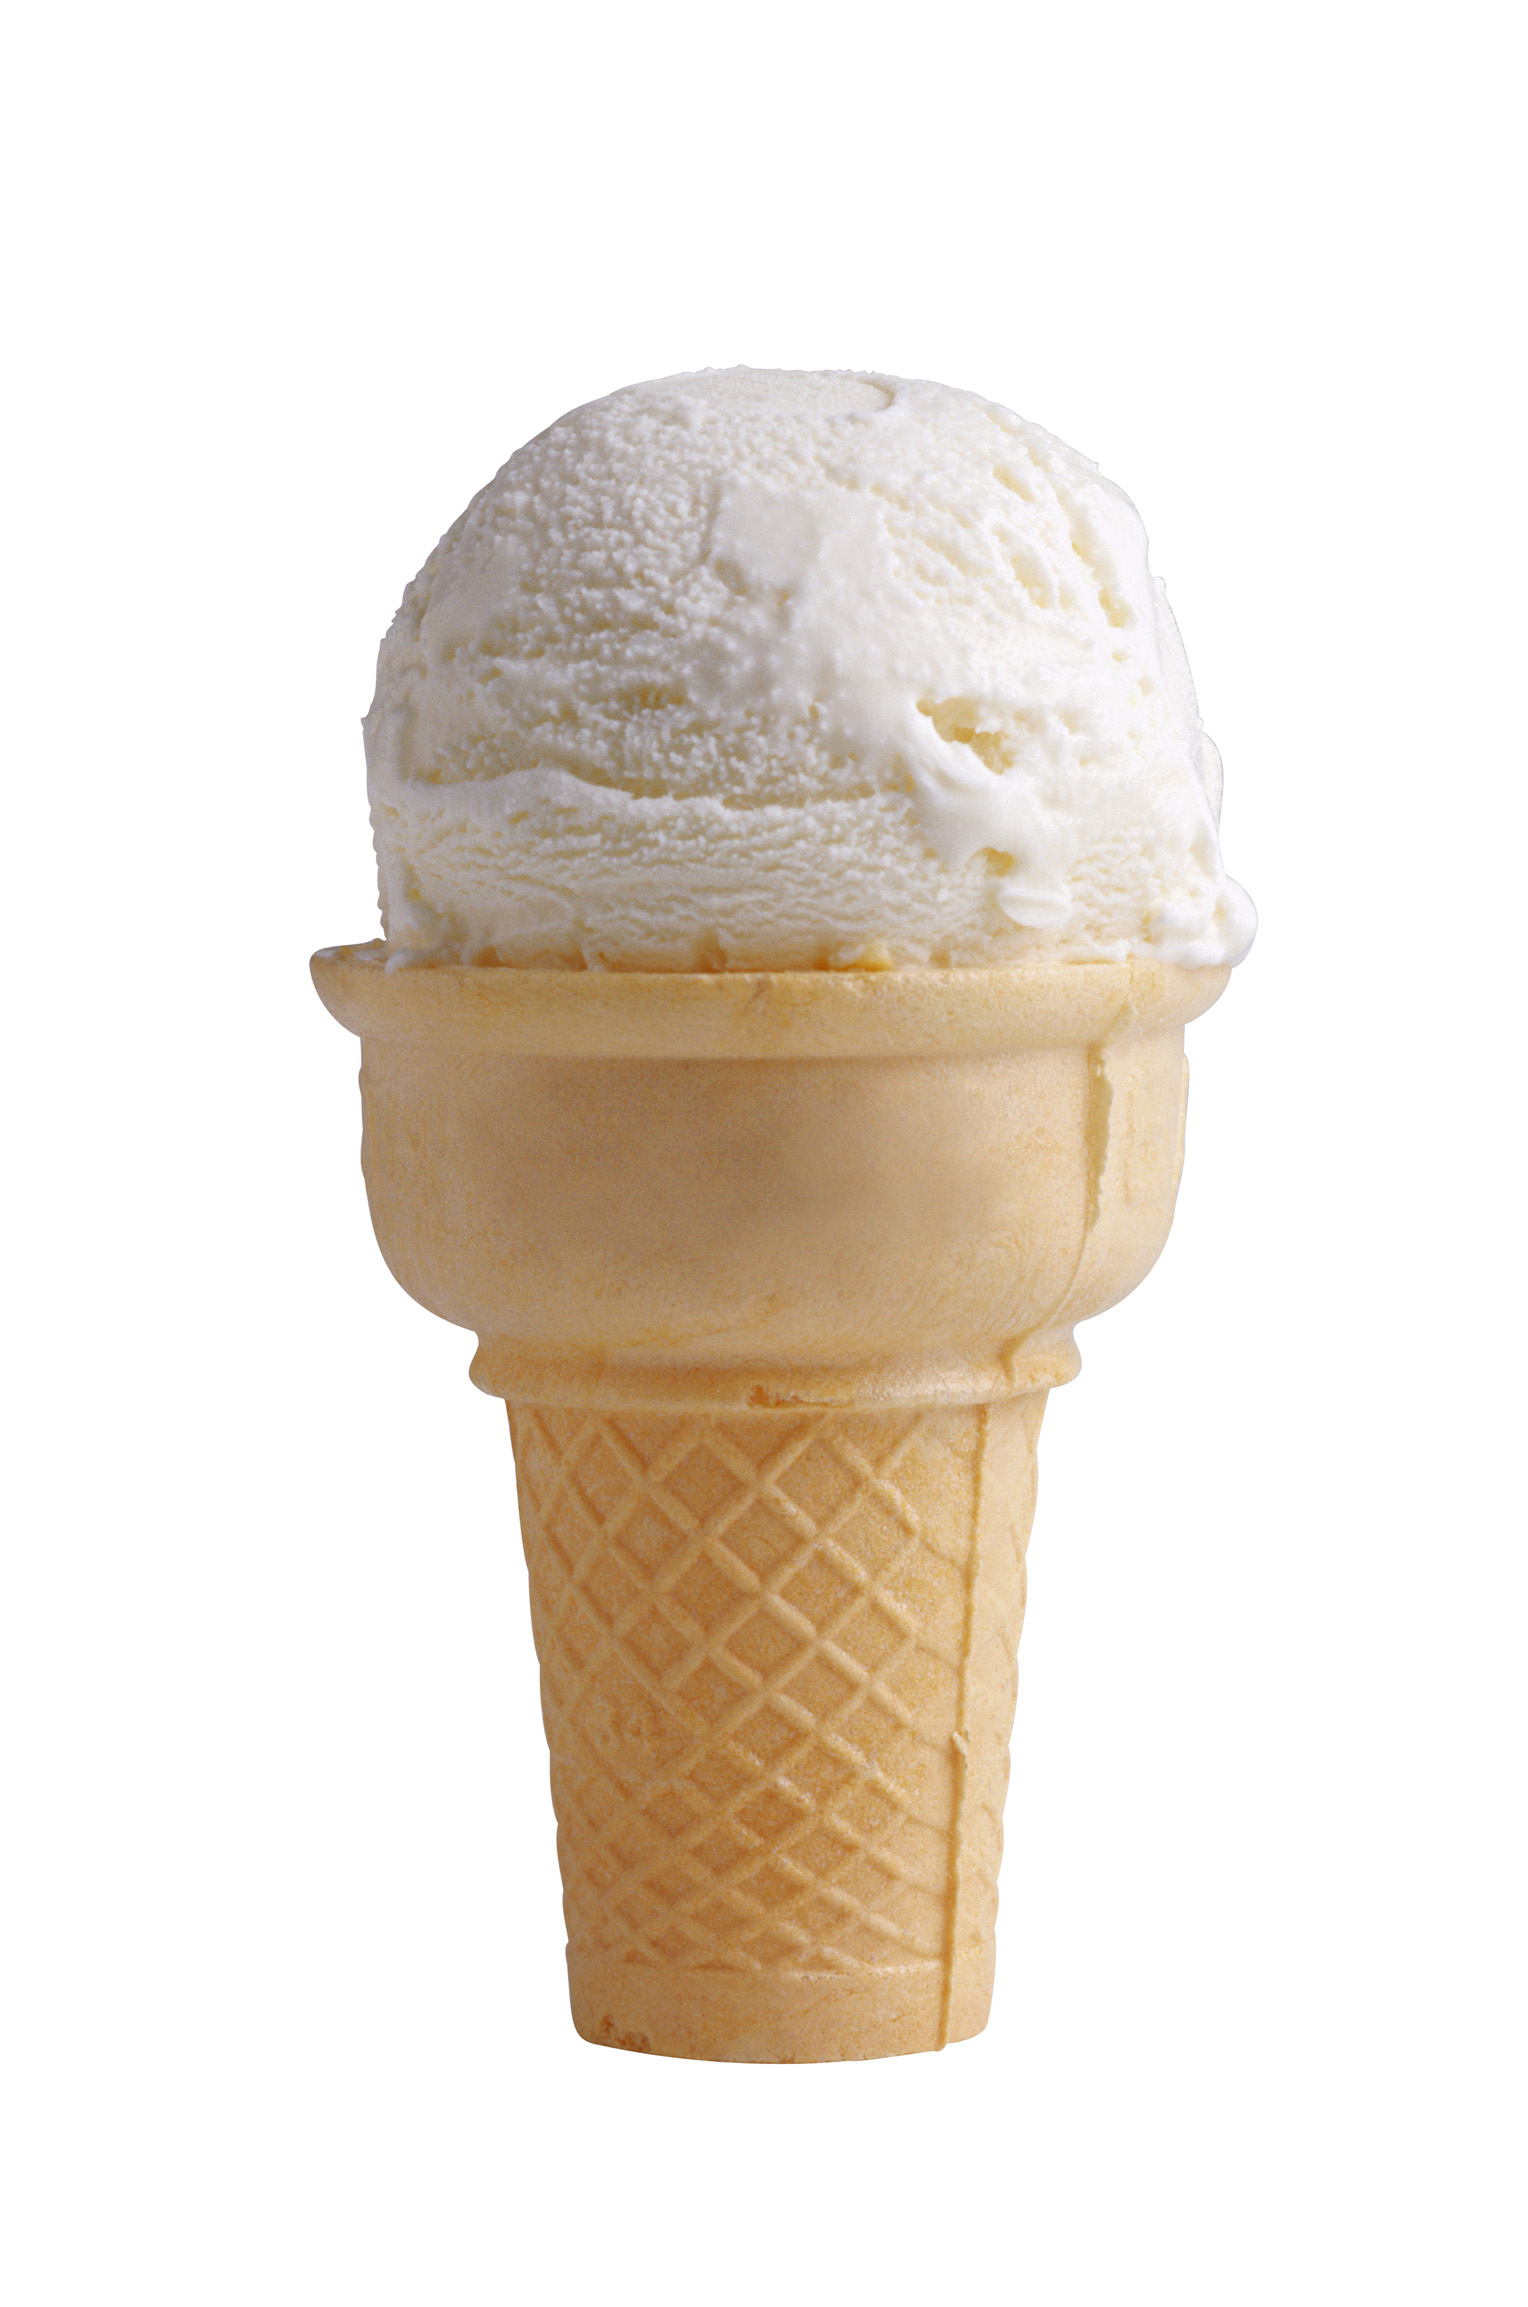 Ice Cream Cone Vanilla | Free Images at Clker.com - vector ...